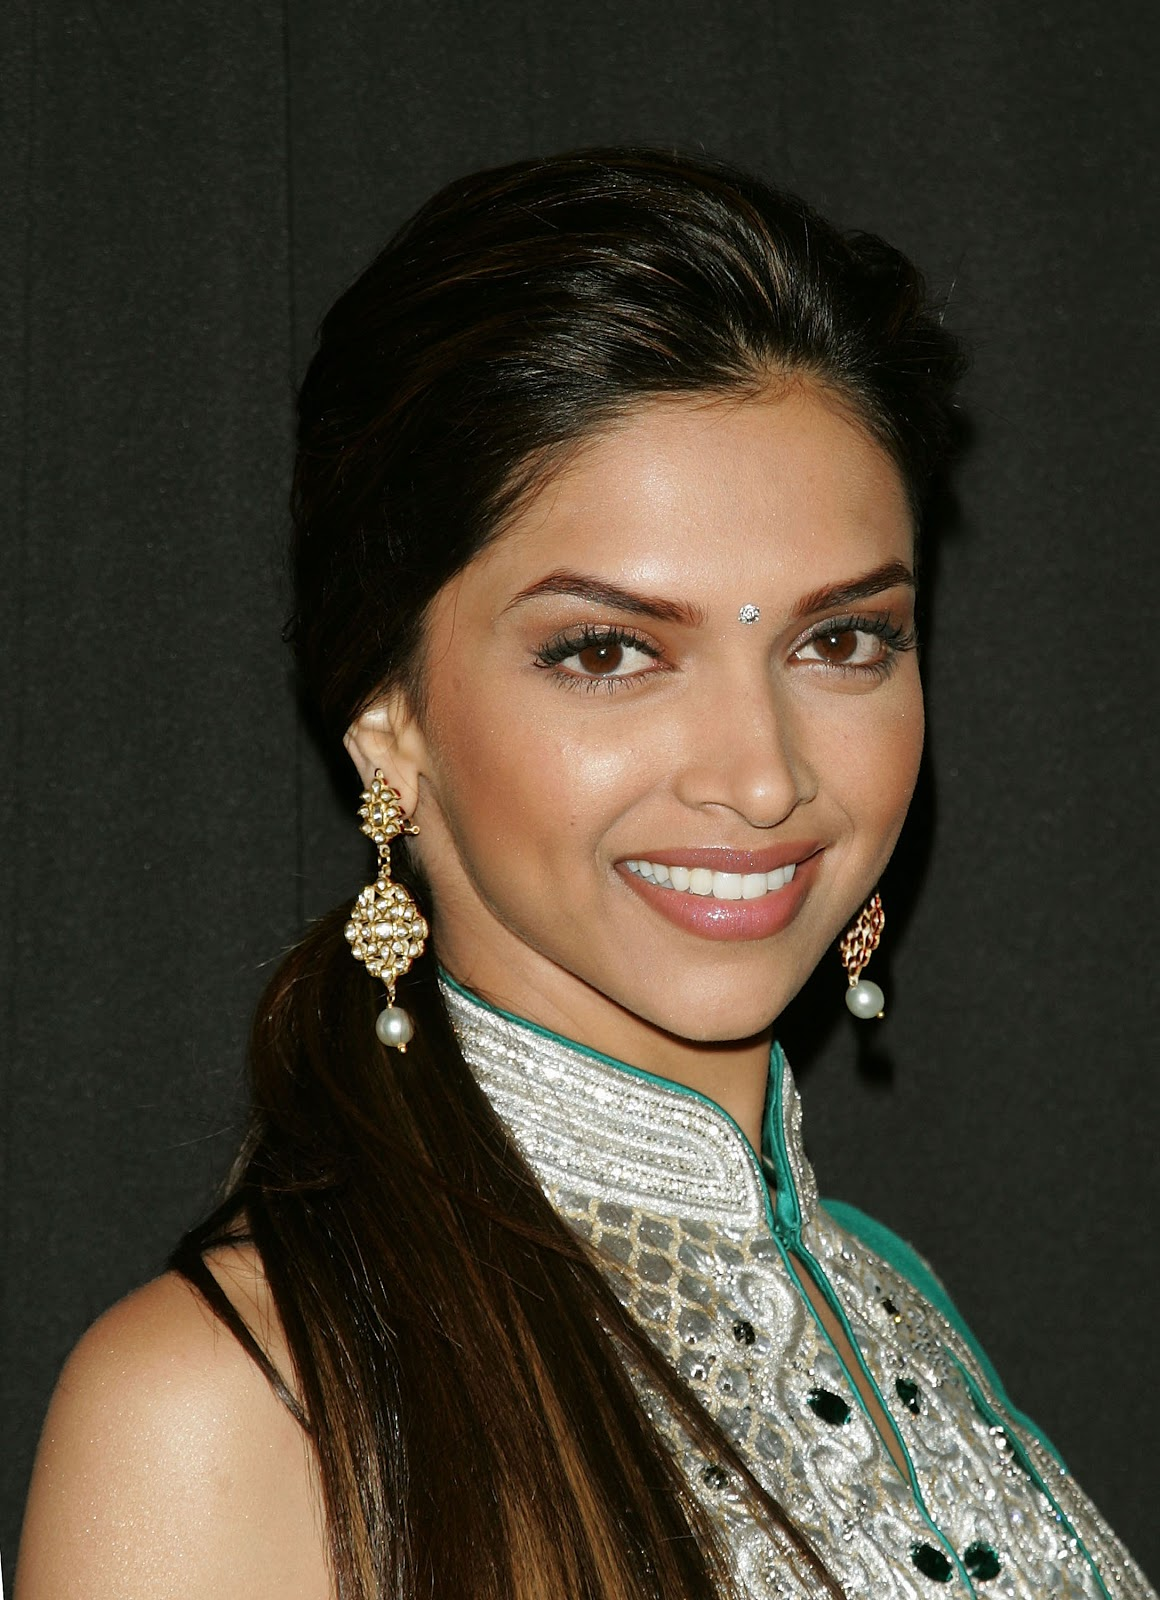 http://3.bp.blogspot.com/-kZ86-QuAKlc/TwHdba75DVI/AAAAAAAAbQI/0e67dFeqcPs/s1600/Deepika-Padukone-attends-the-premiere-of-Notorious-in-NYC.jpg